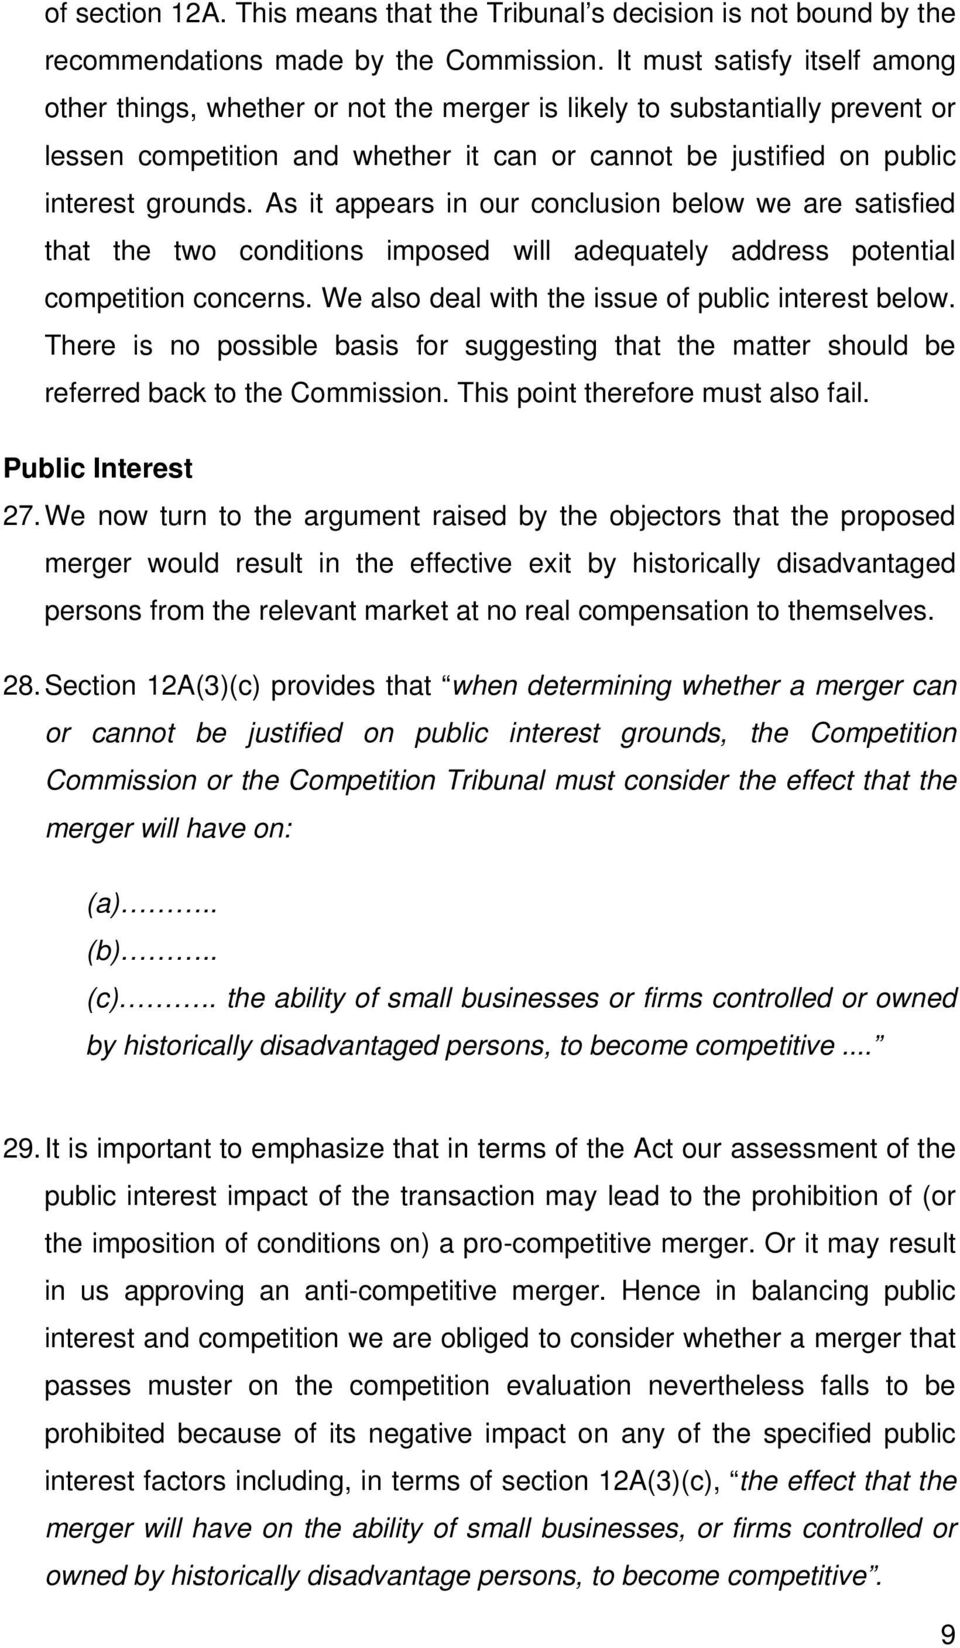 As it appears in our conclusion below we are satisfied that the two conditions imposed will adequately address potential competition concerns. We also deal with the issue of public interest below.